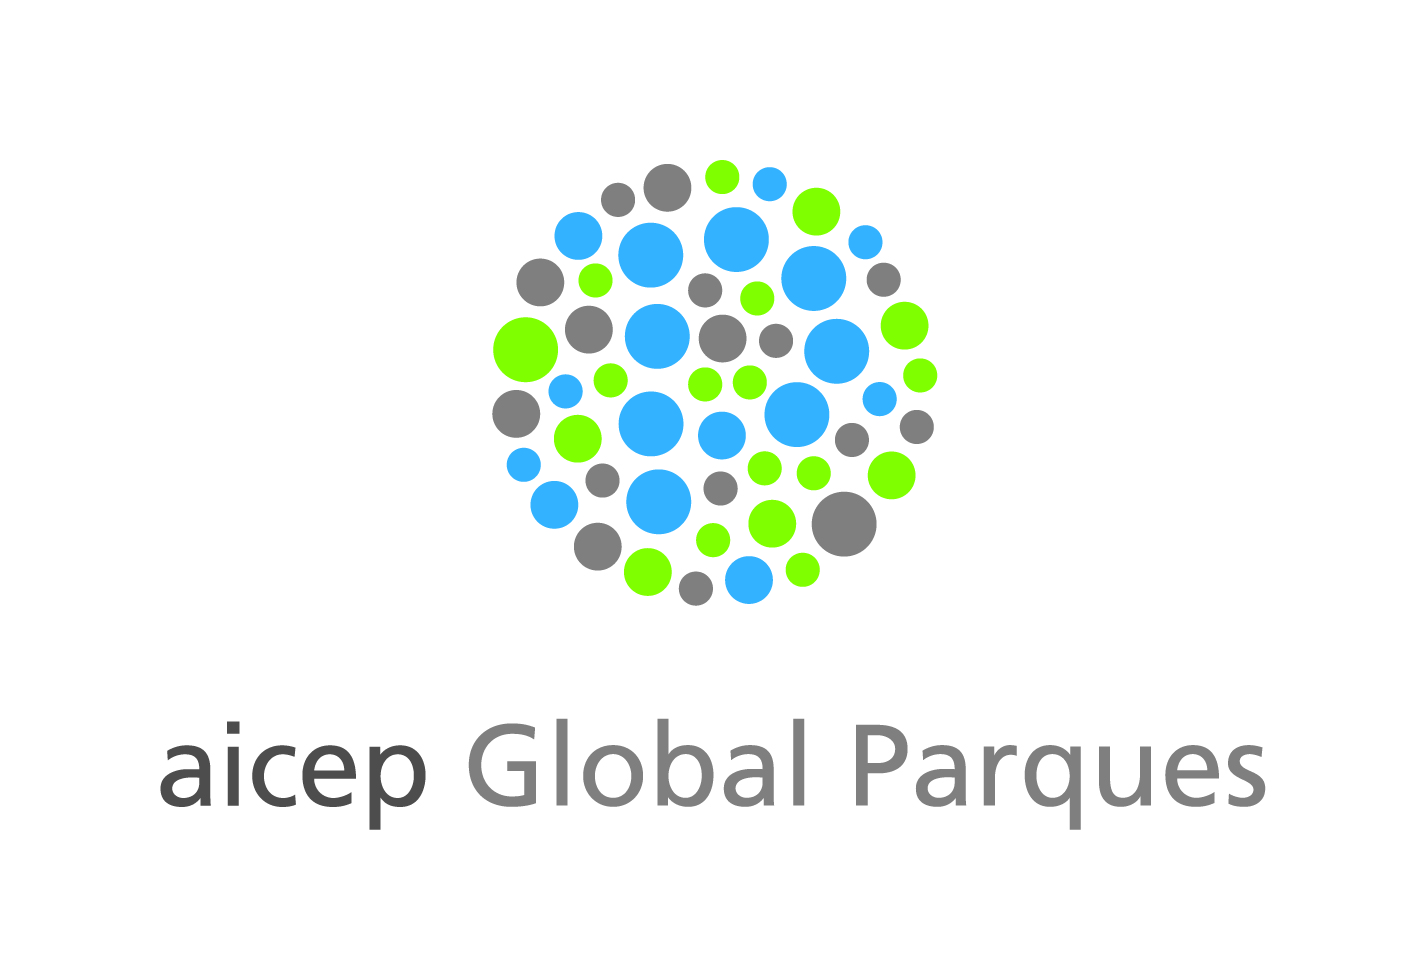 Logotipo aicep Global Parques